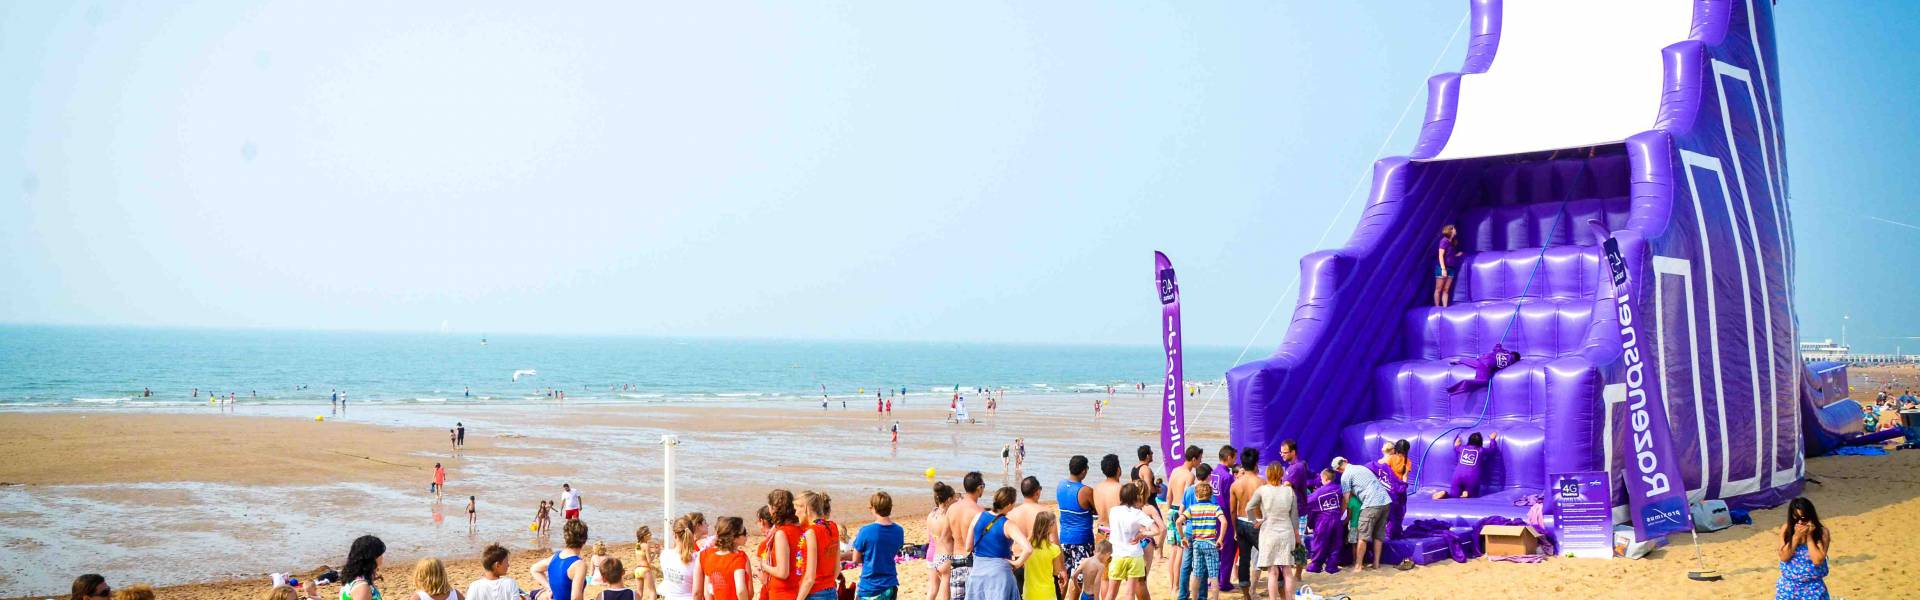 Large inflatable promotional material | X-Treme Creations Purple inflatable slide on the beach with the slogan: 4G to 10 times faster and the Proximus logo. Proximus Demonstr8 X-Treme Creations